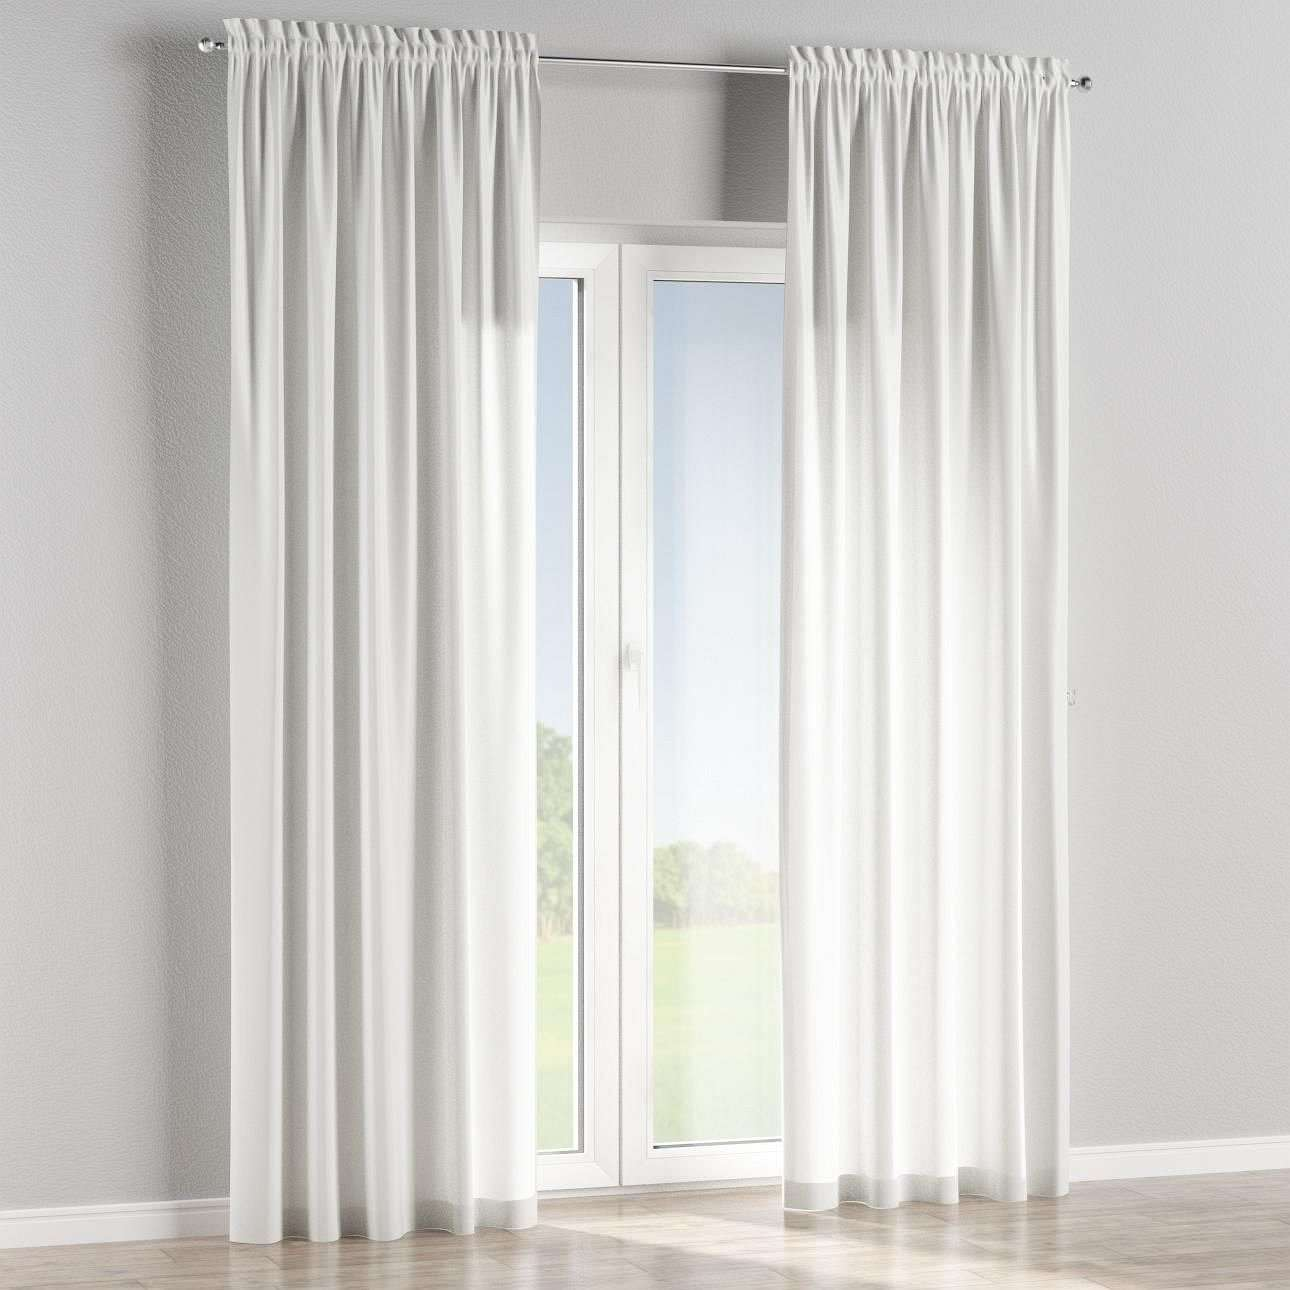 Slot and frill lined curtains in collection Flowers, fabric: 311-08